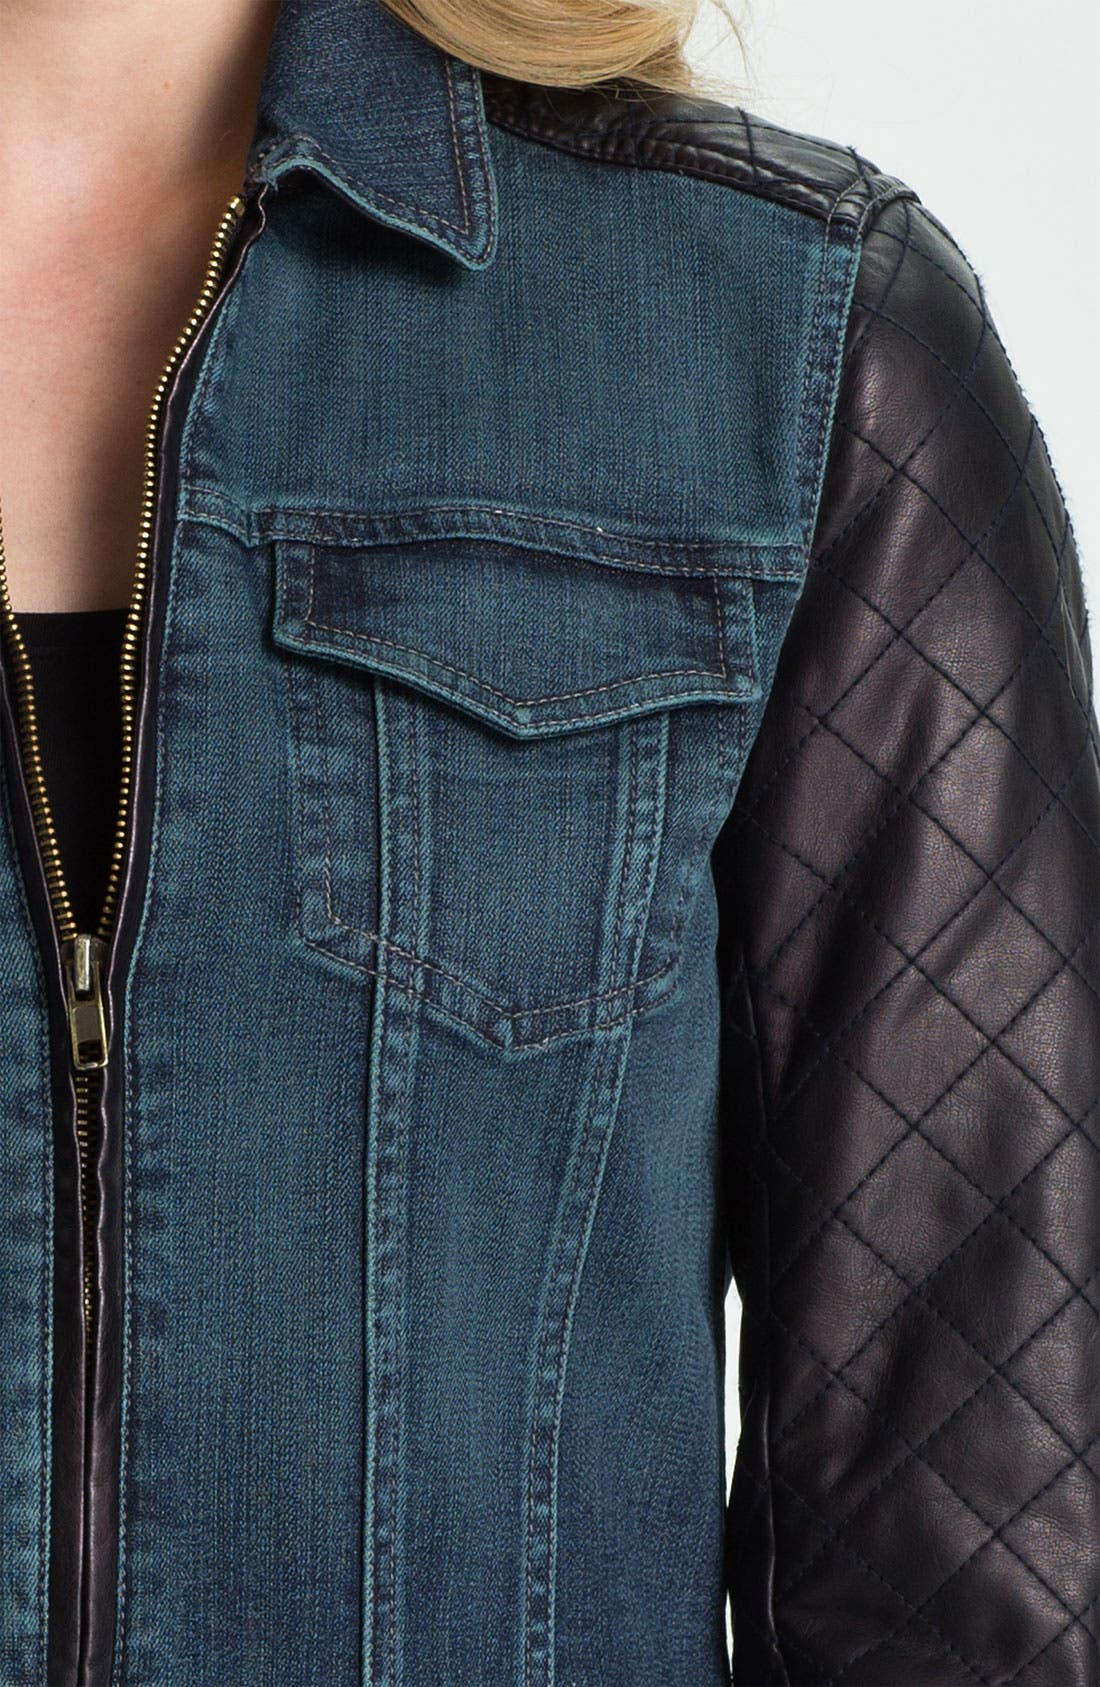 Alternate Image 3  - Isaac Mizrahi Jeans 'Kimberly' Mix Media Jacket (Online Exclusive)